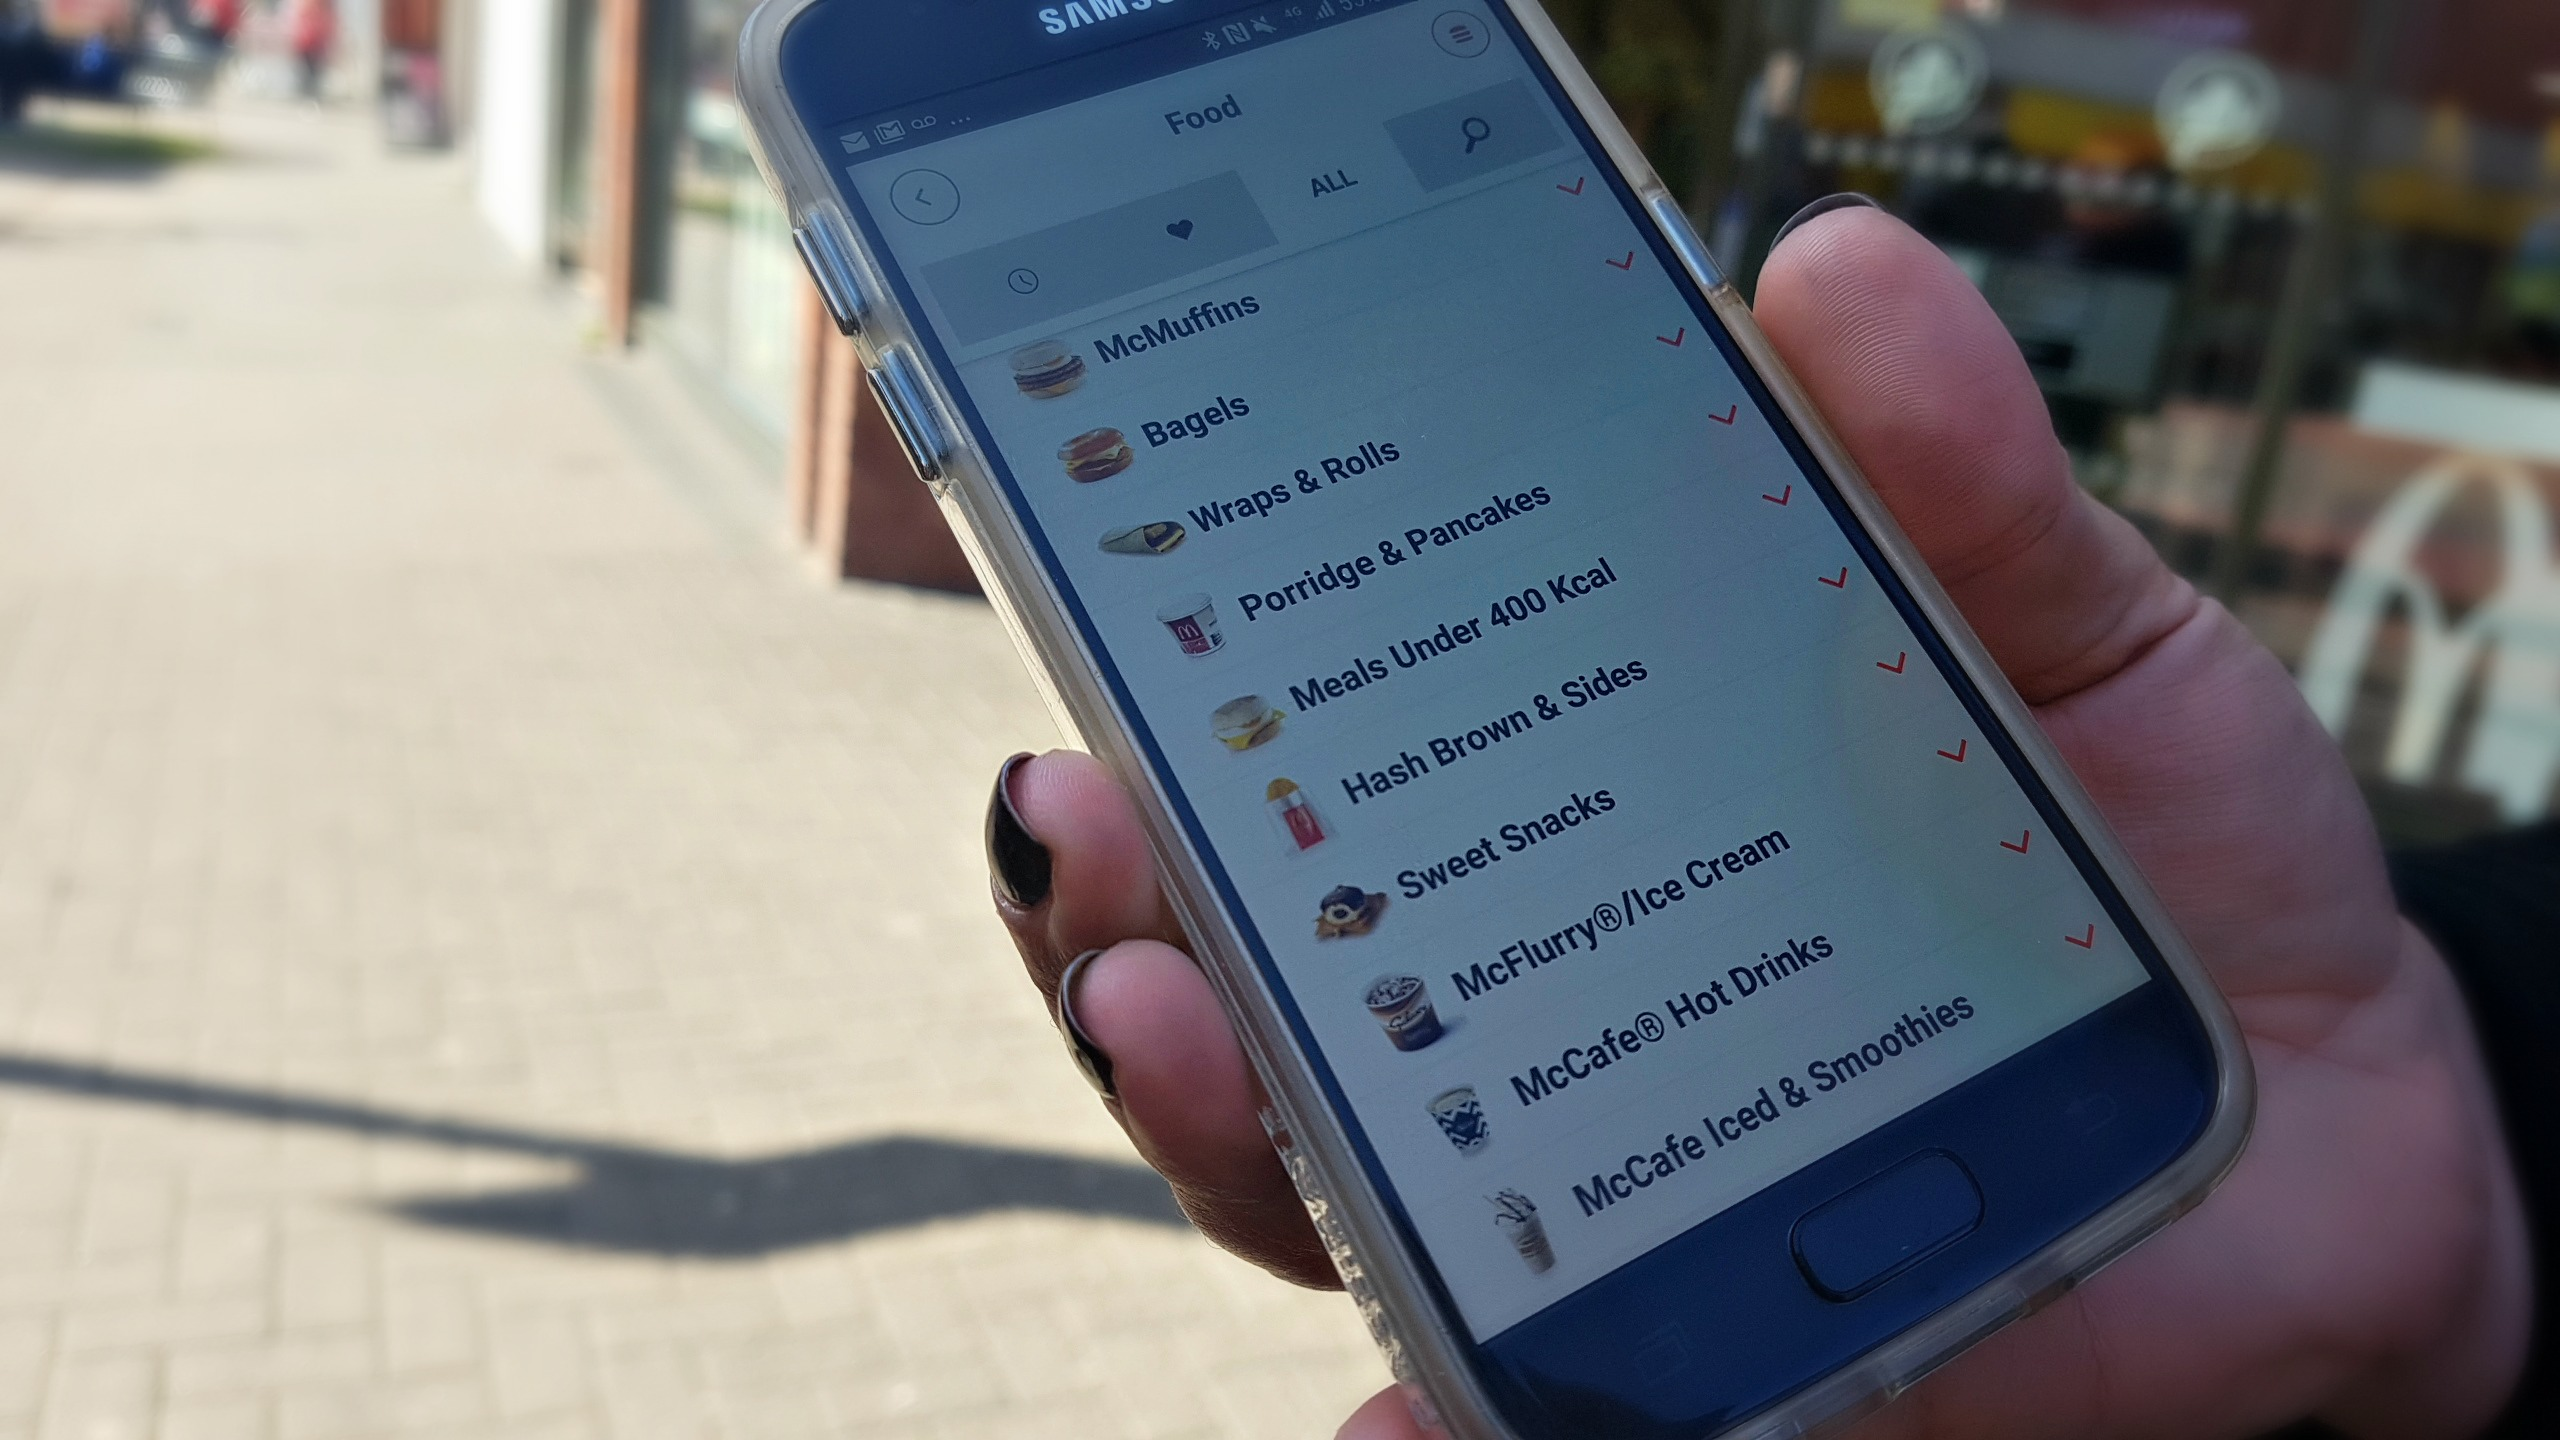 menu screen from using the mcdonald's click and collect app on a samsung phone